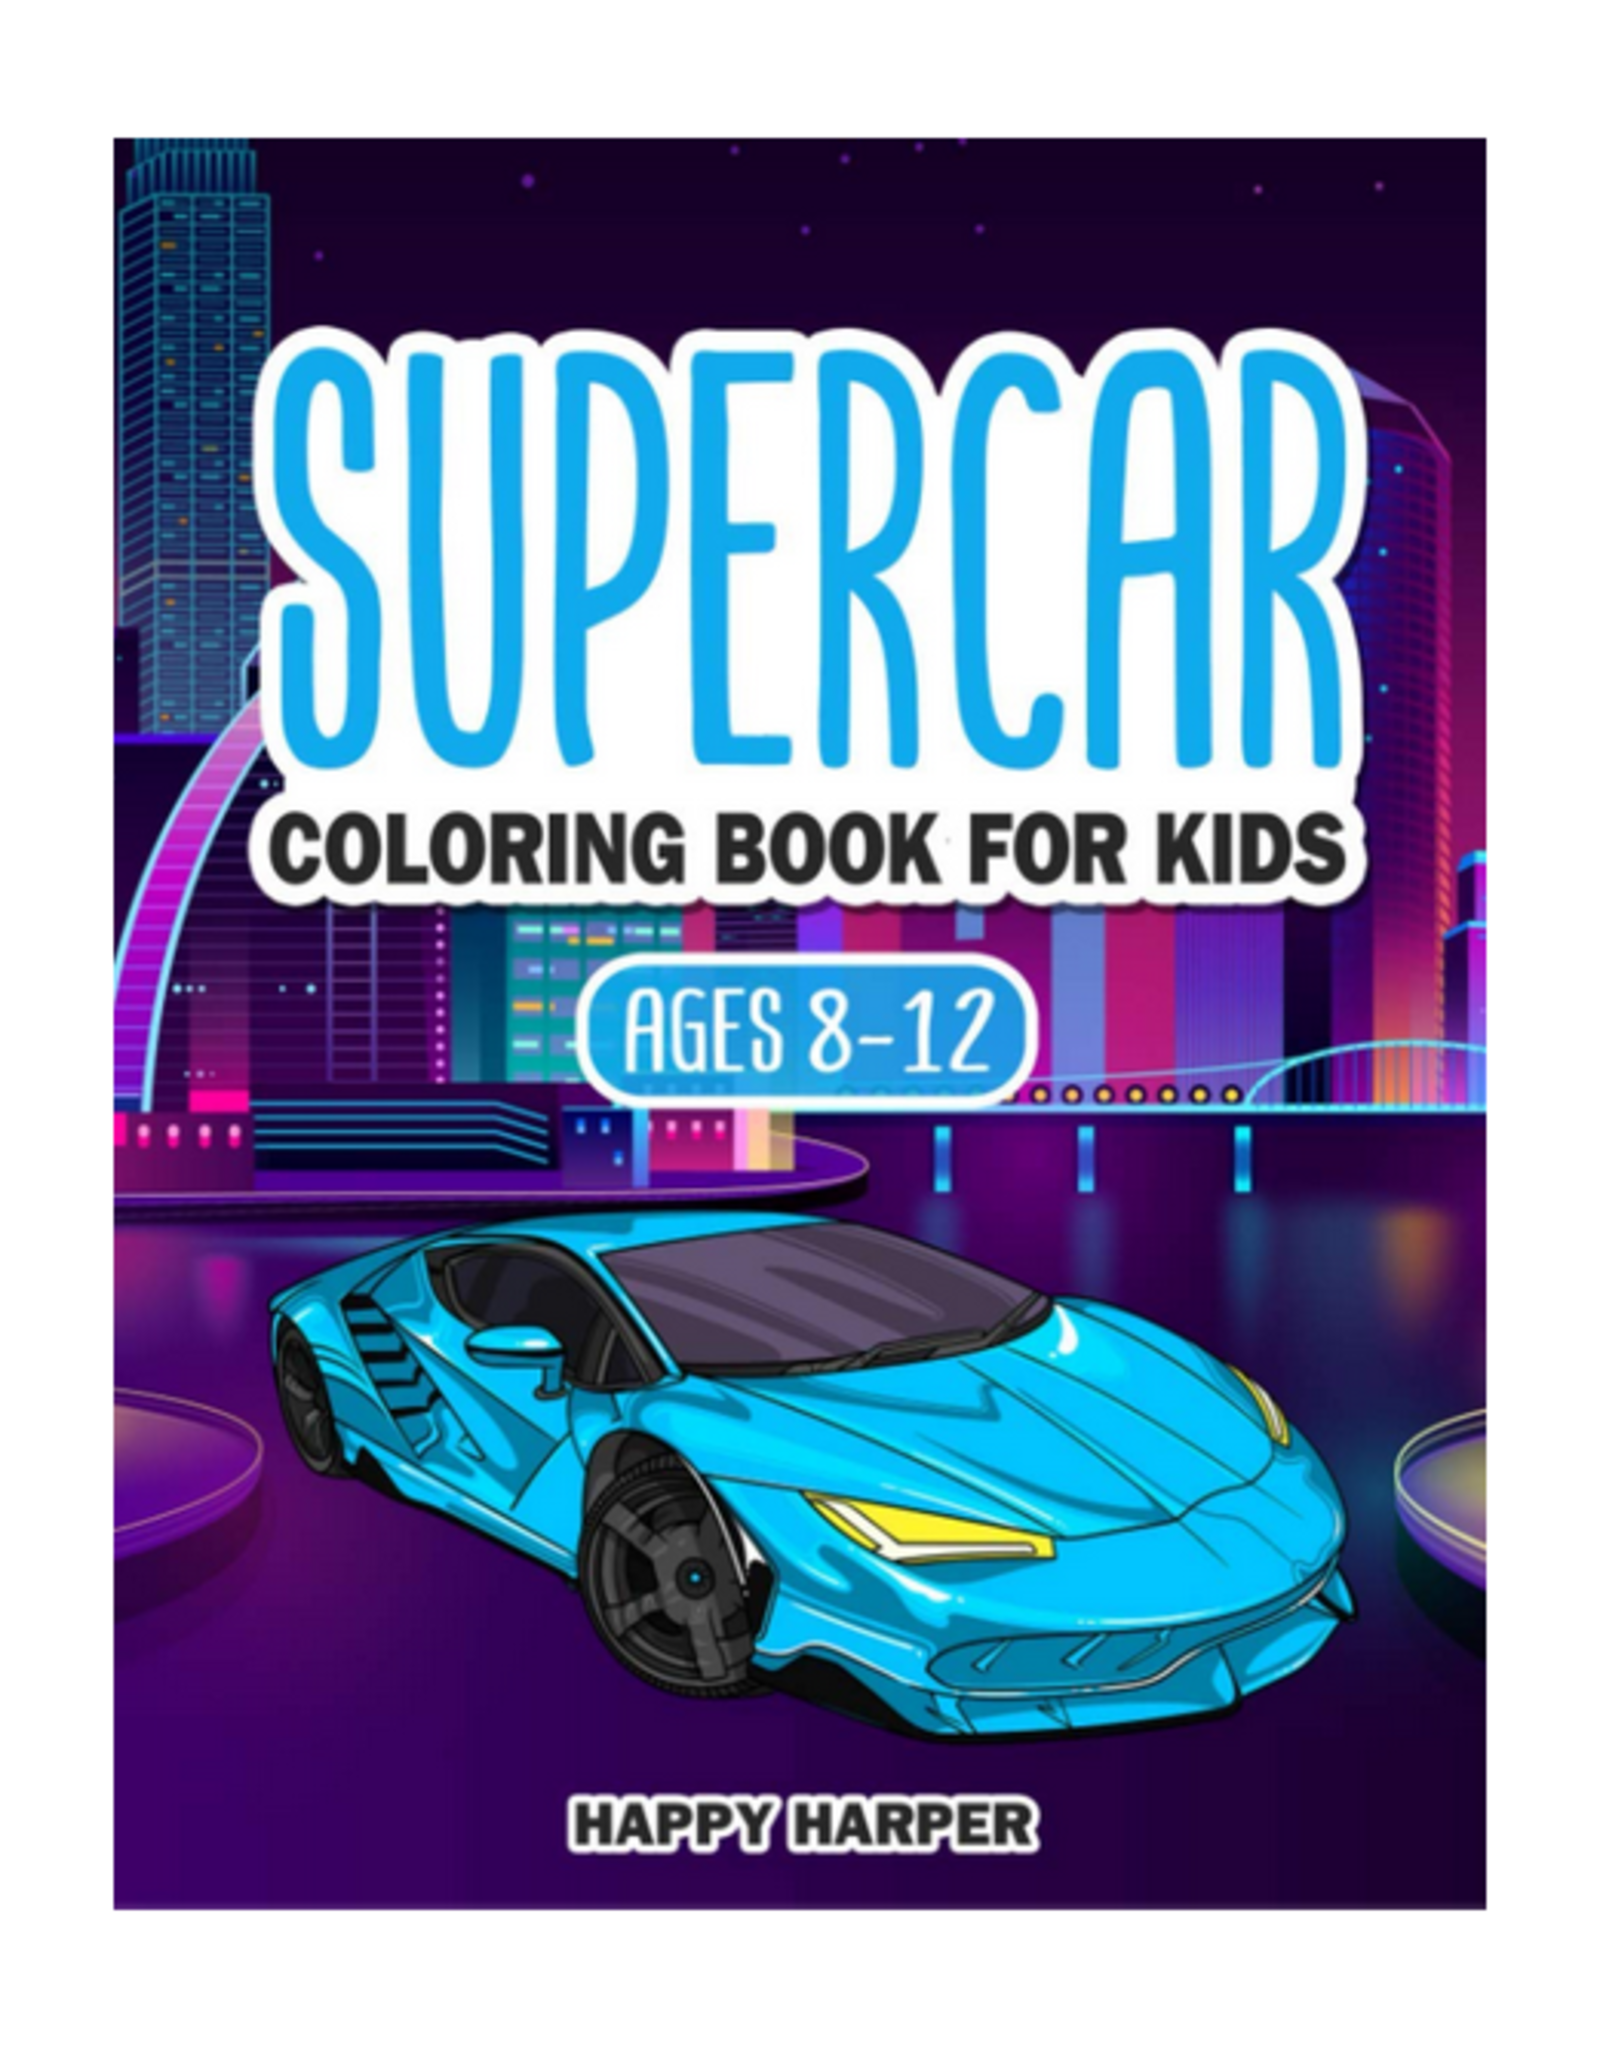 Happy Harper Colouring Book for Kids, Supercar